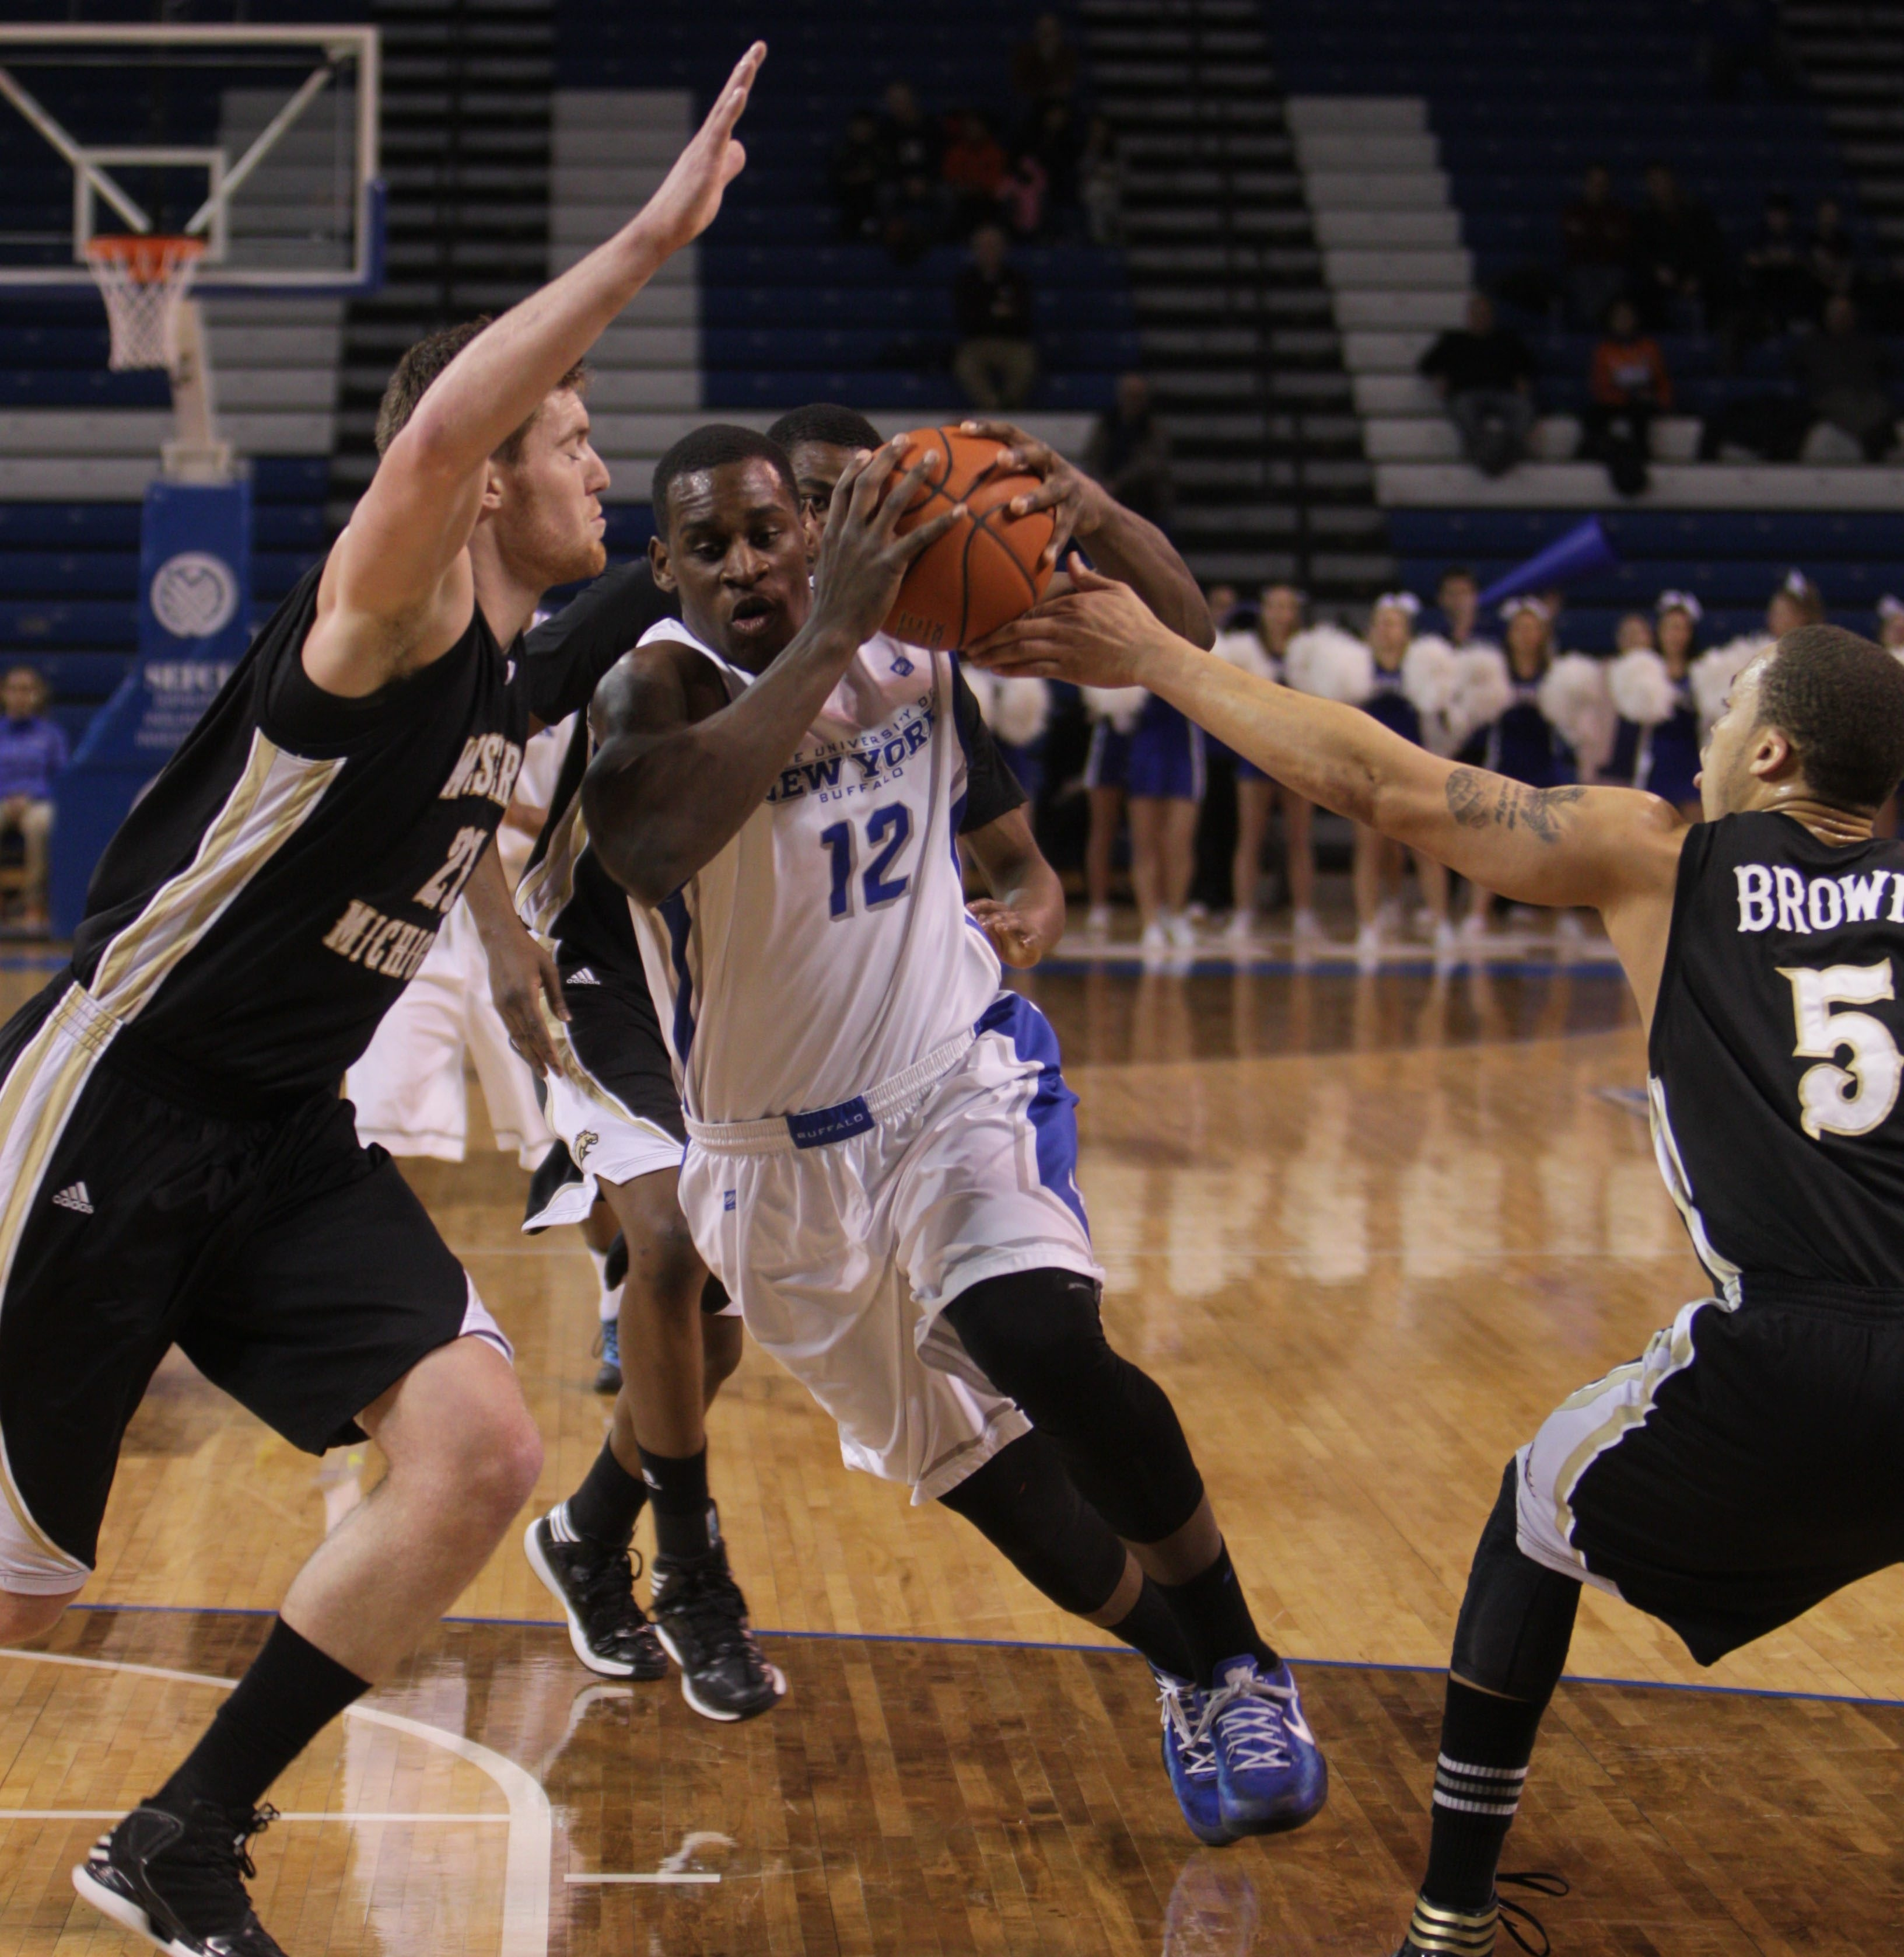 UB's Javon McCrea drives past Western Michigan's Shayne Whittington, left, and David Brown for two points. McCrea scored a game-high 20 points.